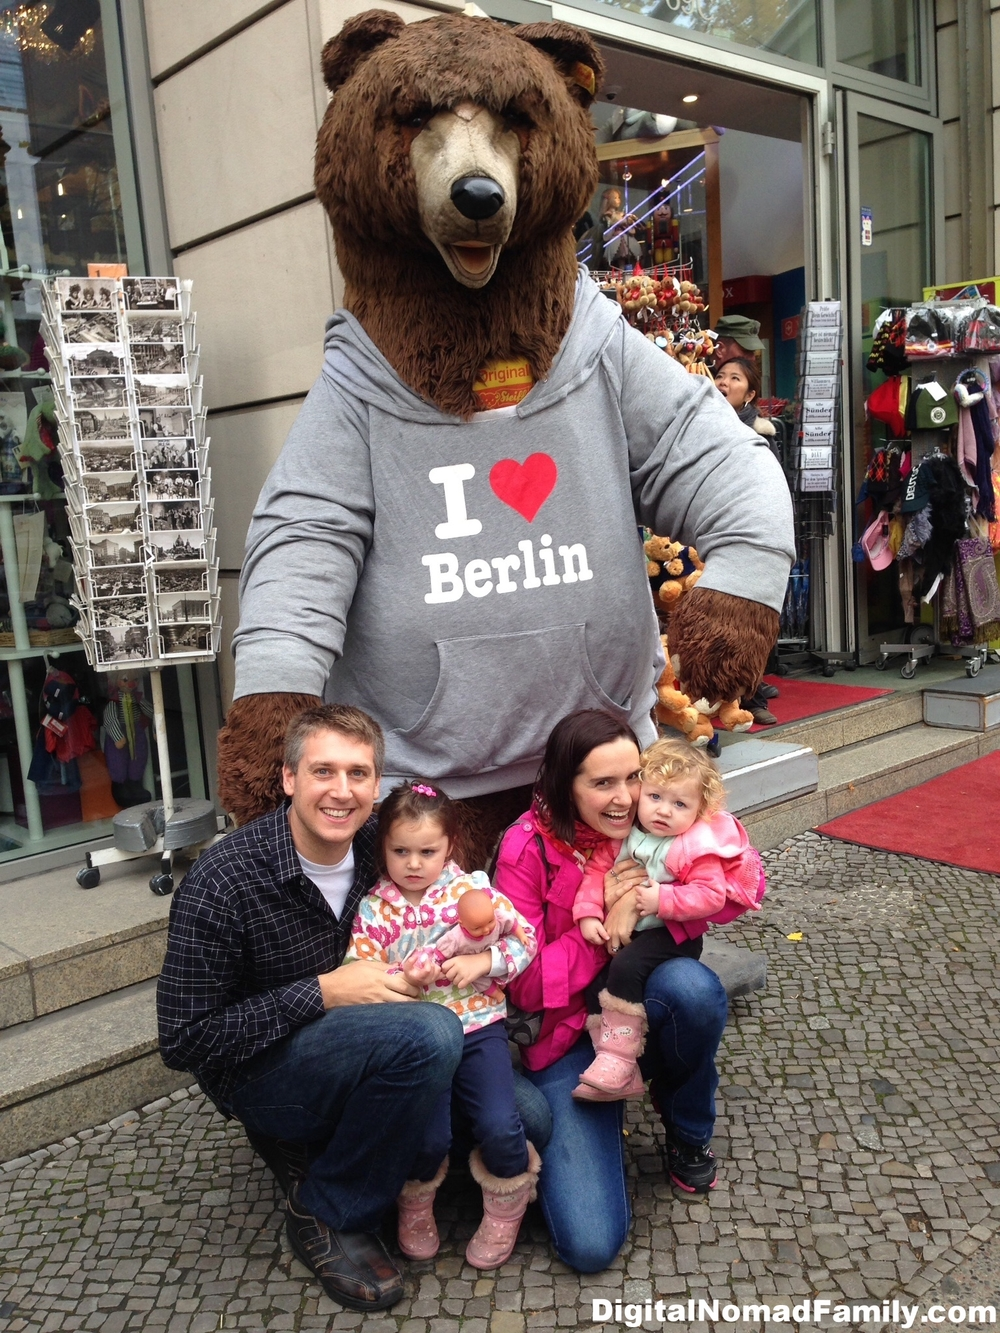 We love Berlin! :)